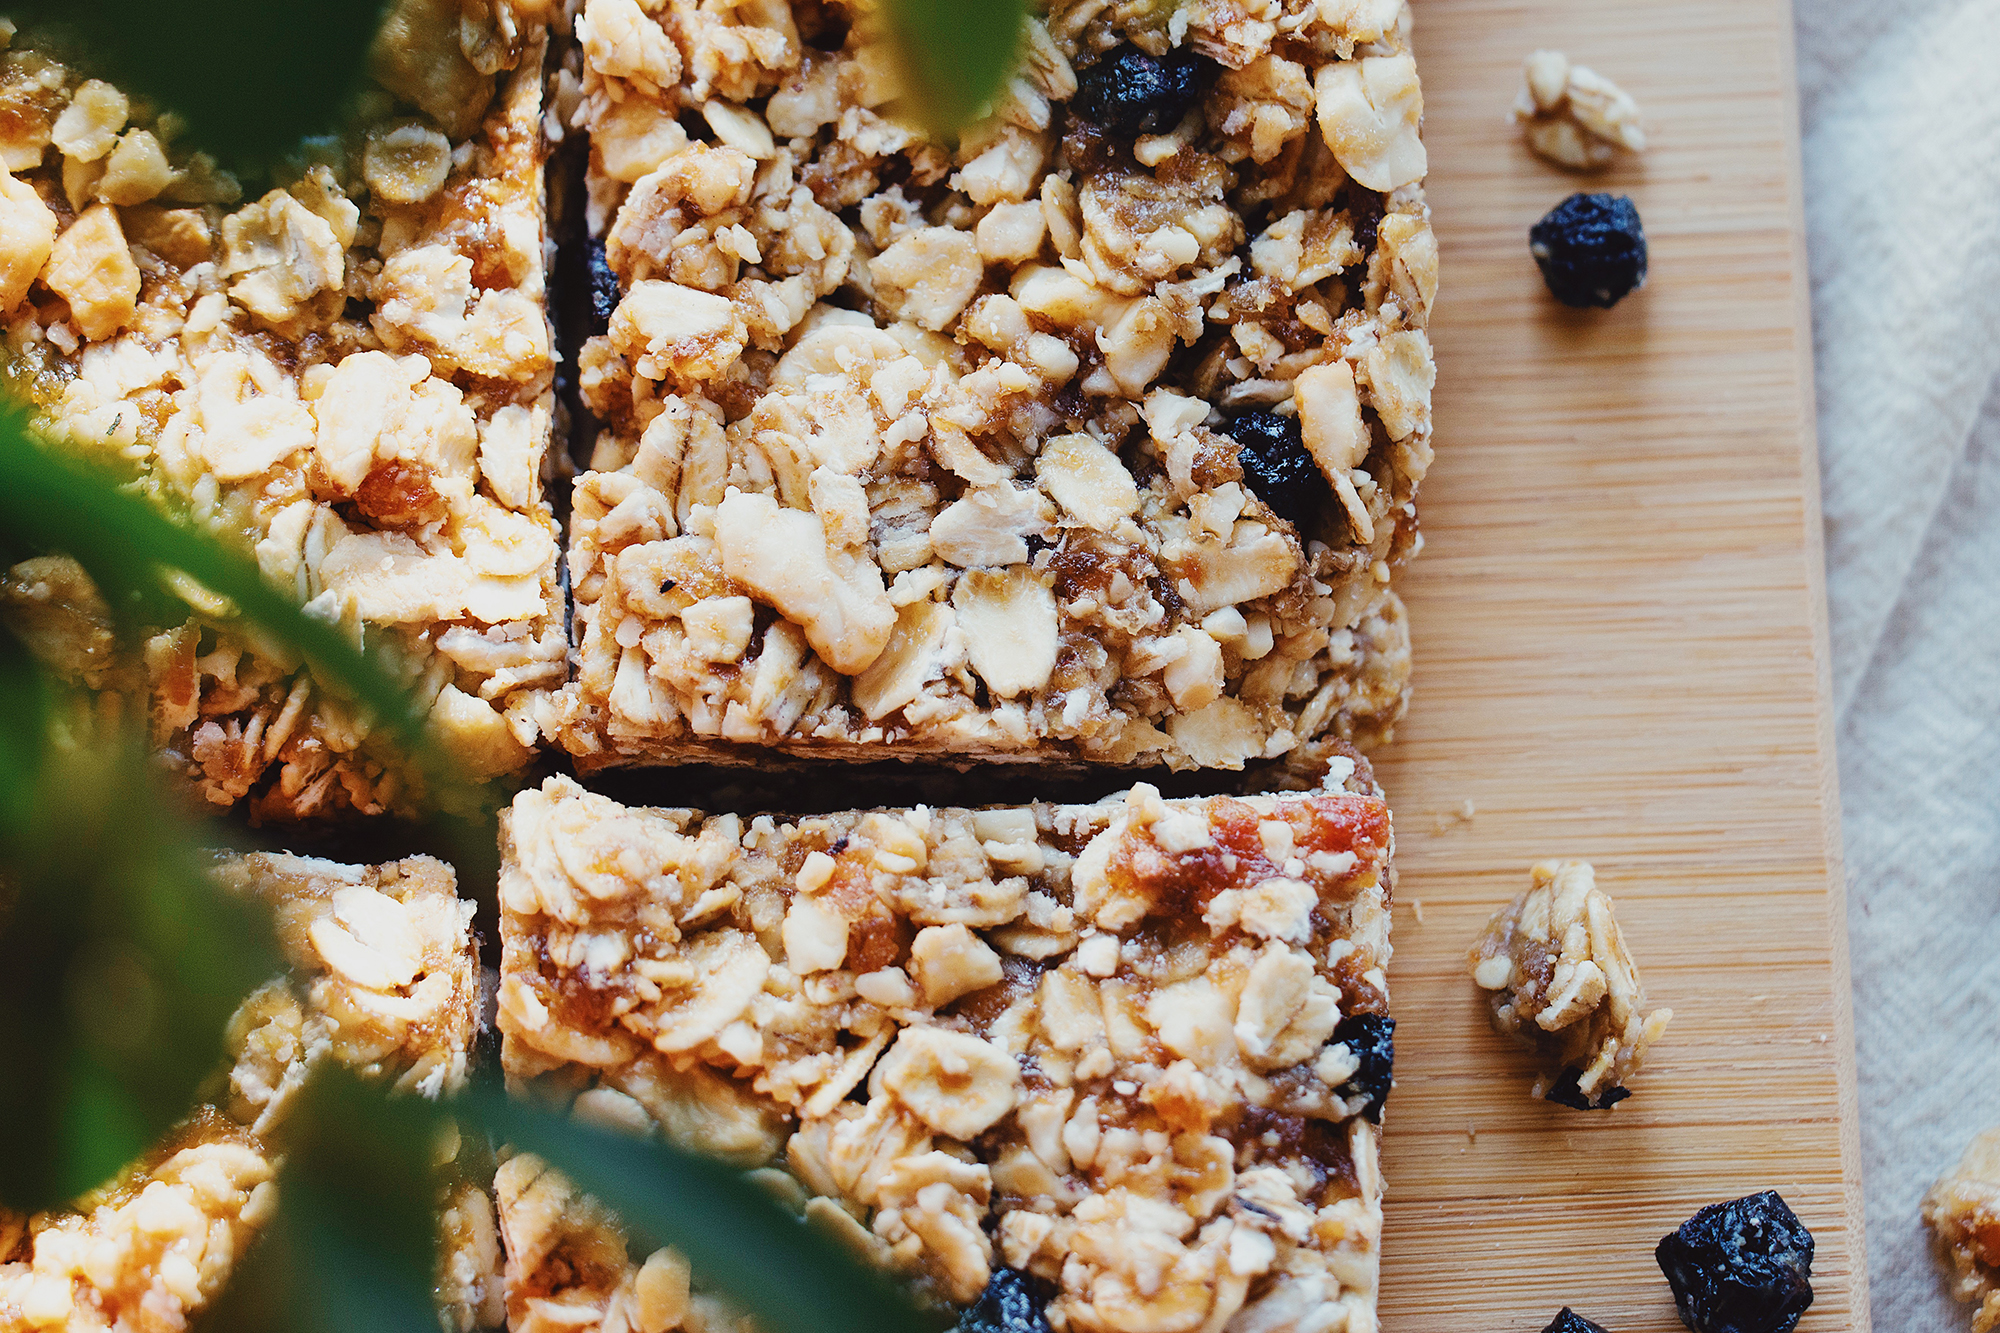 Homemade granola bars on wooden pan